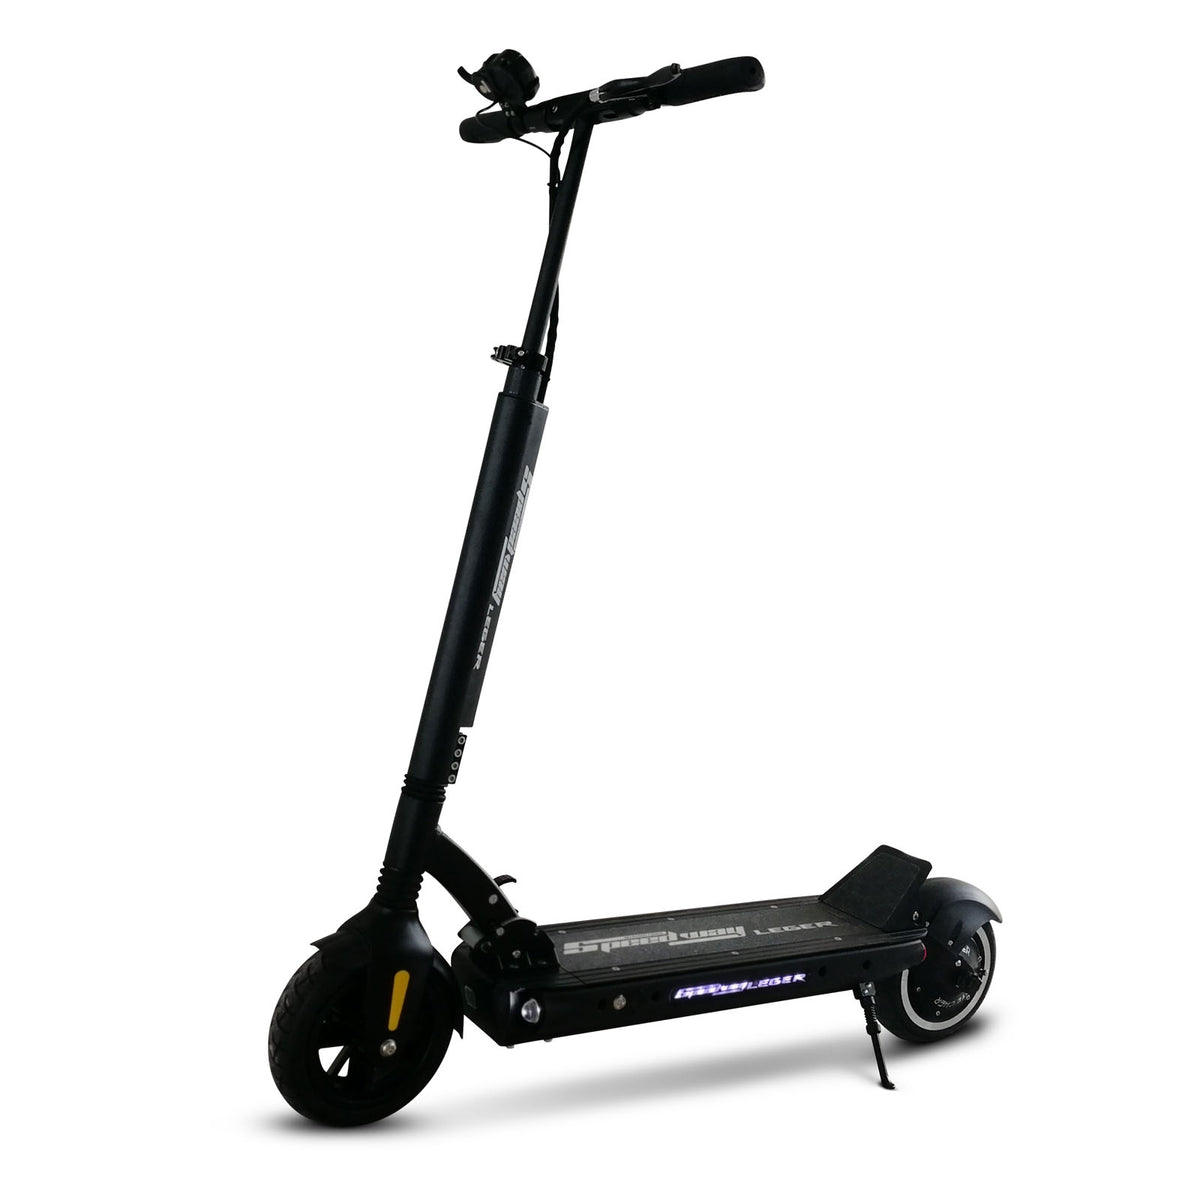 Speedway Leger Electric Scooter Profile Picture